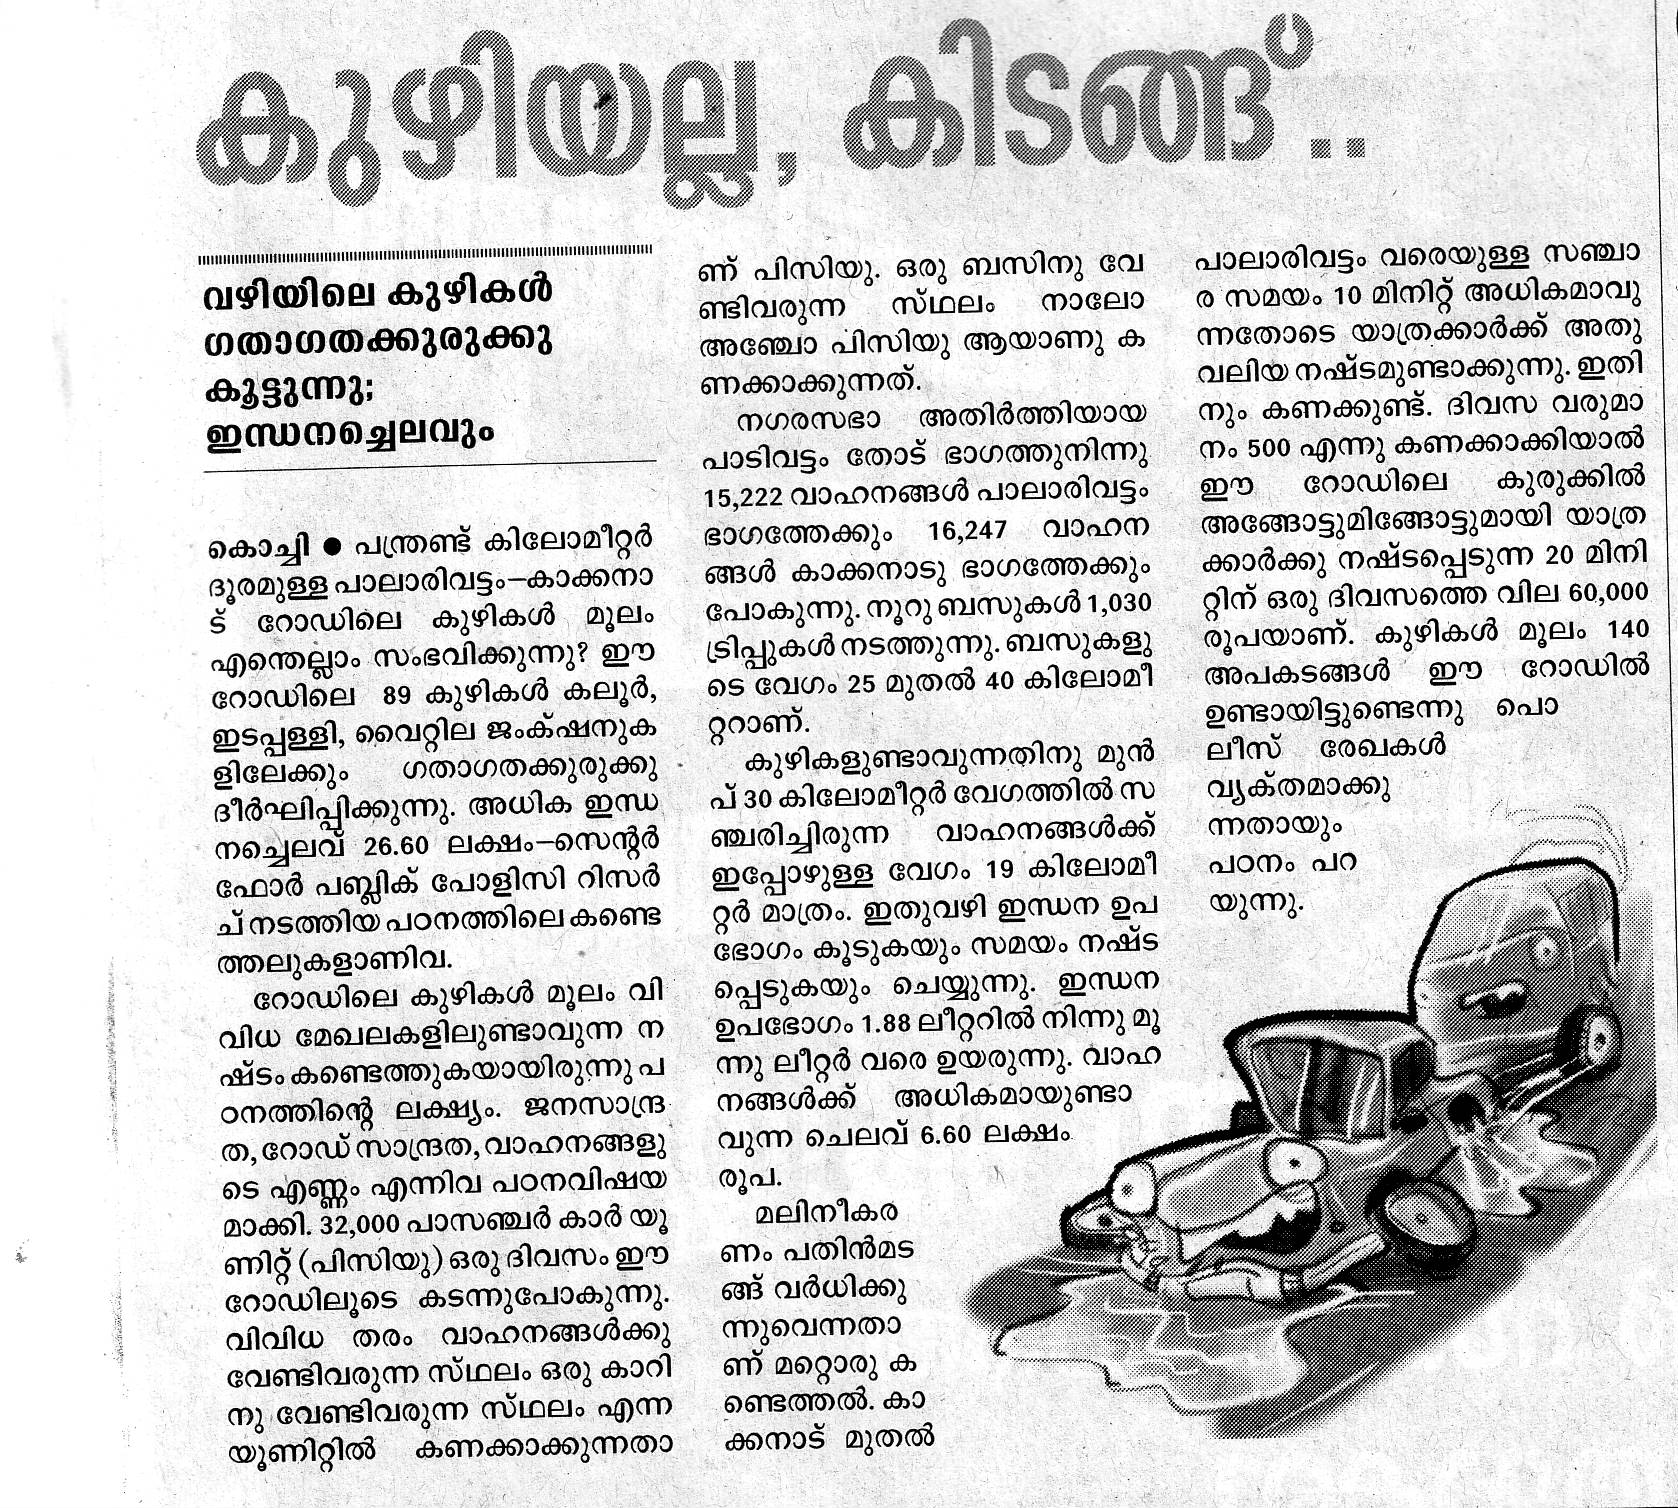 manorama-potholes0002